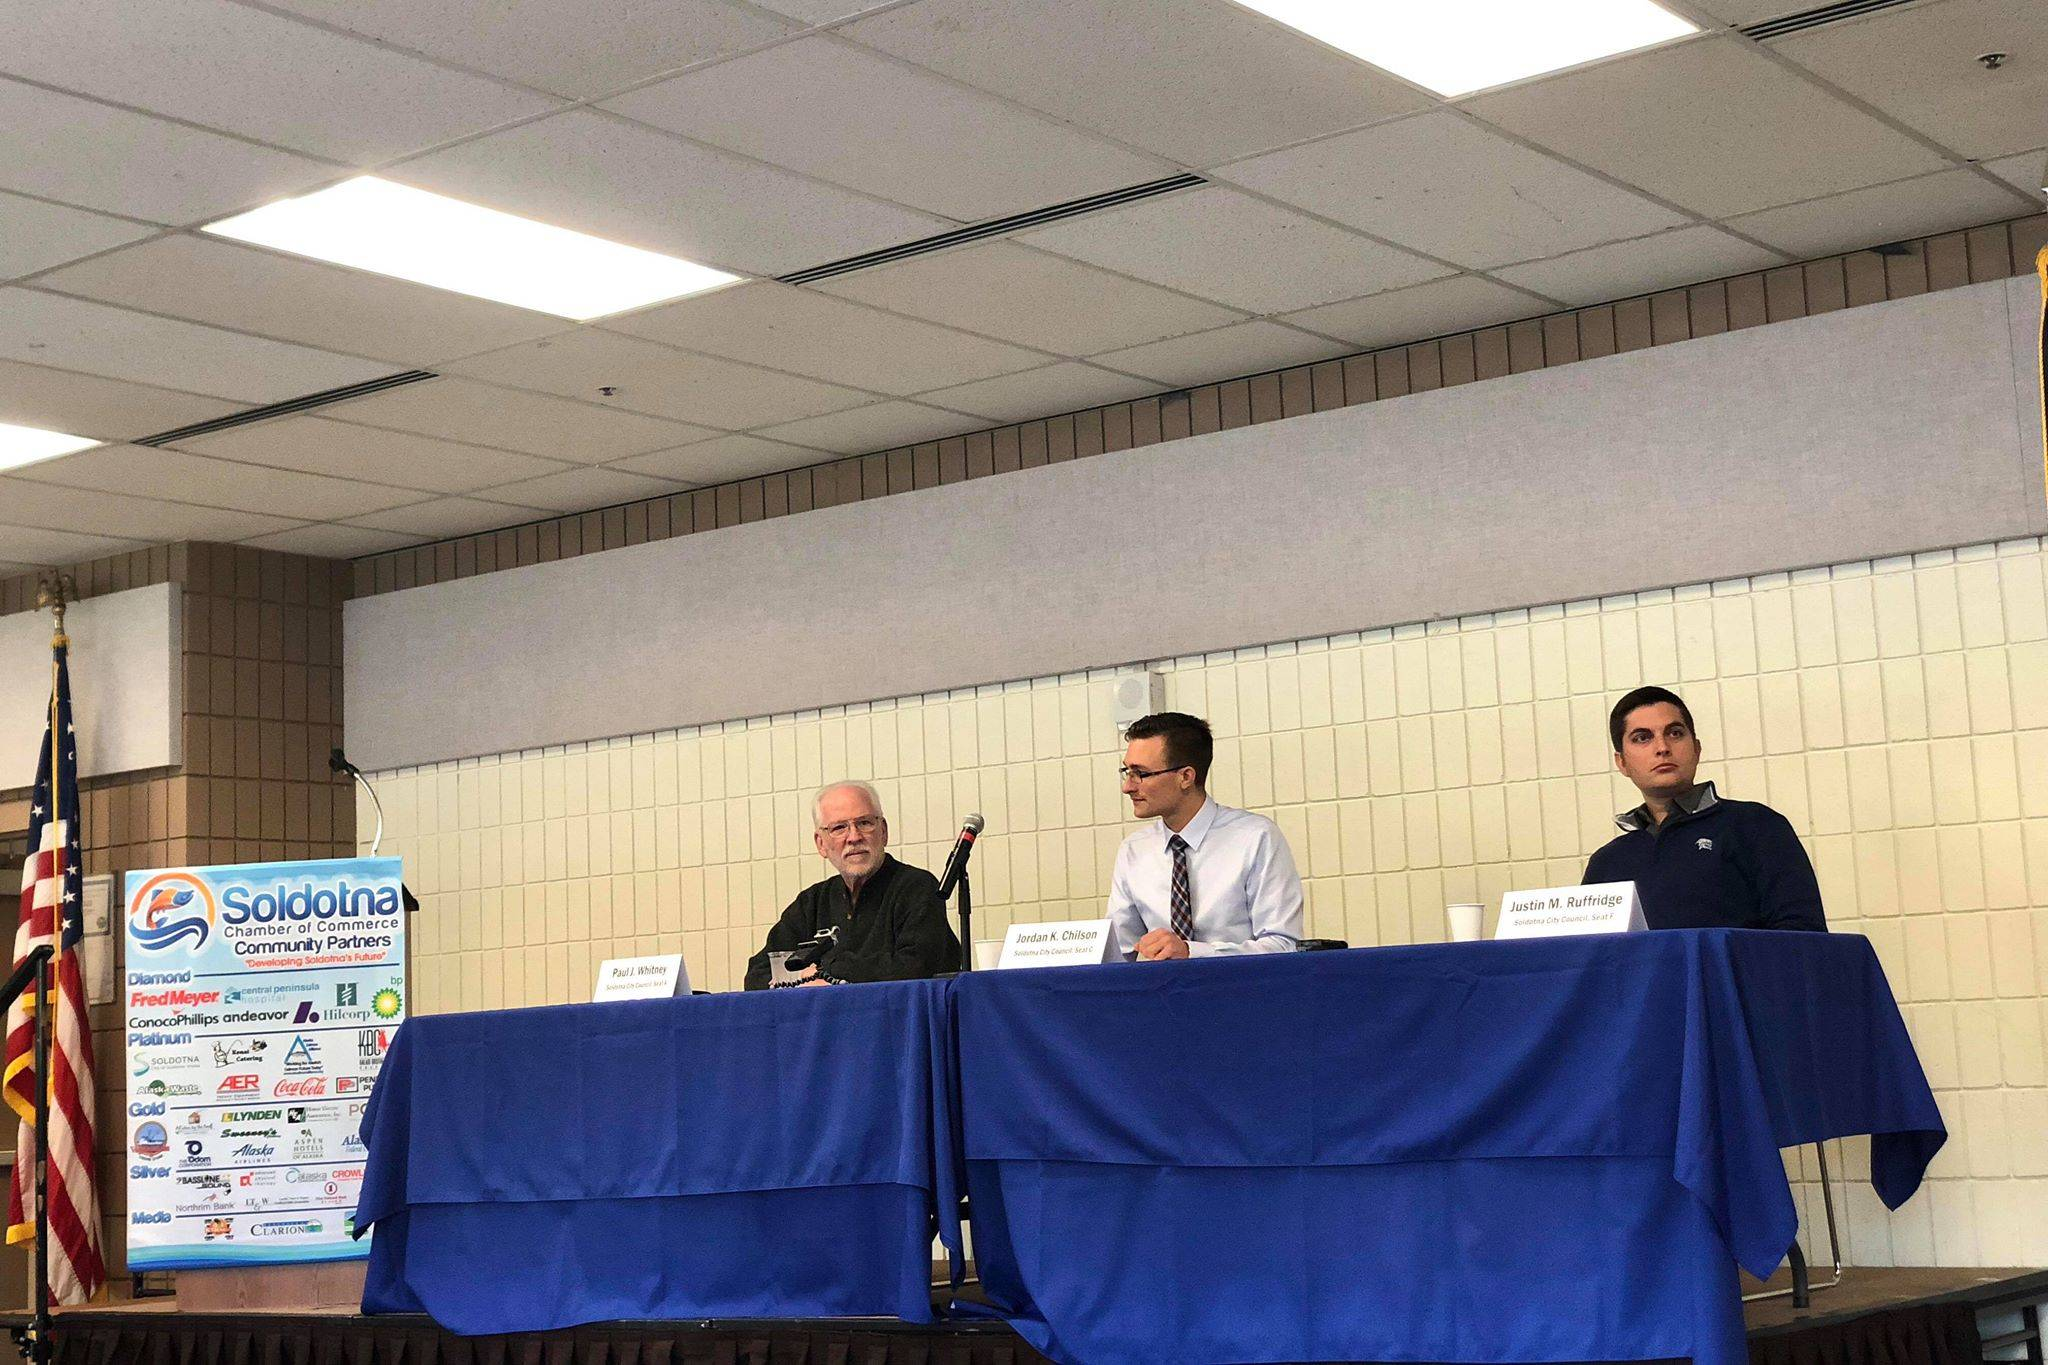 Candidates for Soldotna City Council, Paul Whitney, Jordan Chilson and Justin Ruffridge discuss issues Soldotna is facing on Wednesday, Sept. 26, 2018, in the Soldotna Chamber Luncheon in Soldotna, Alaska. (Photo by Victoria Petersen/Peninsula Clarion)